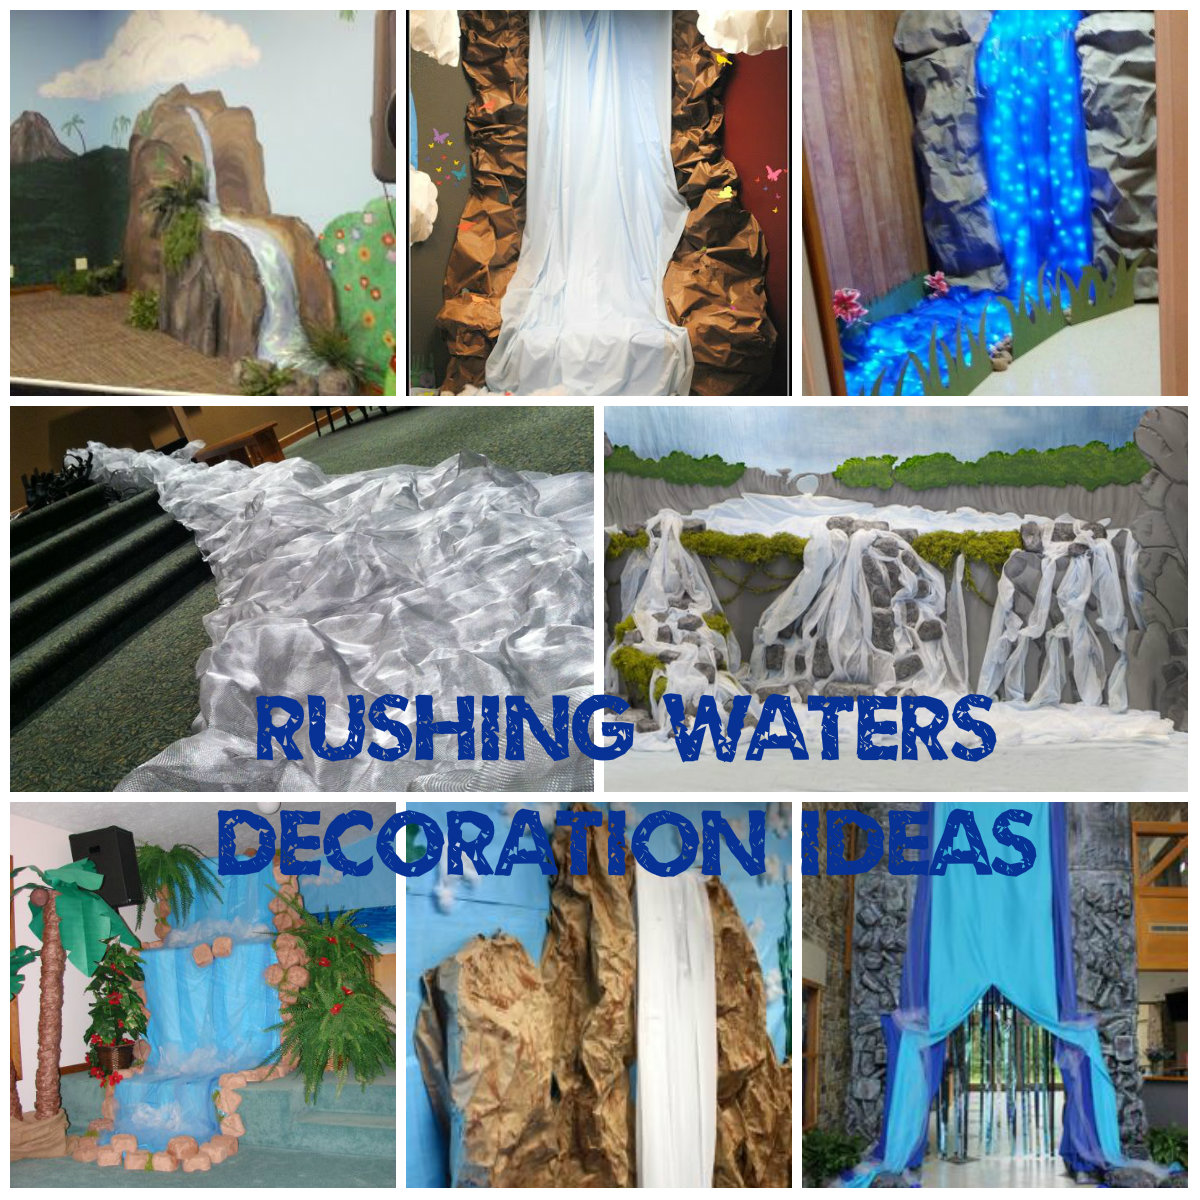 Rushing Waters Music Decoration Ideas Vbs 2015 Rebecca